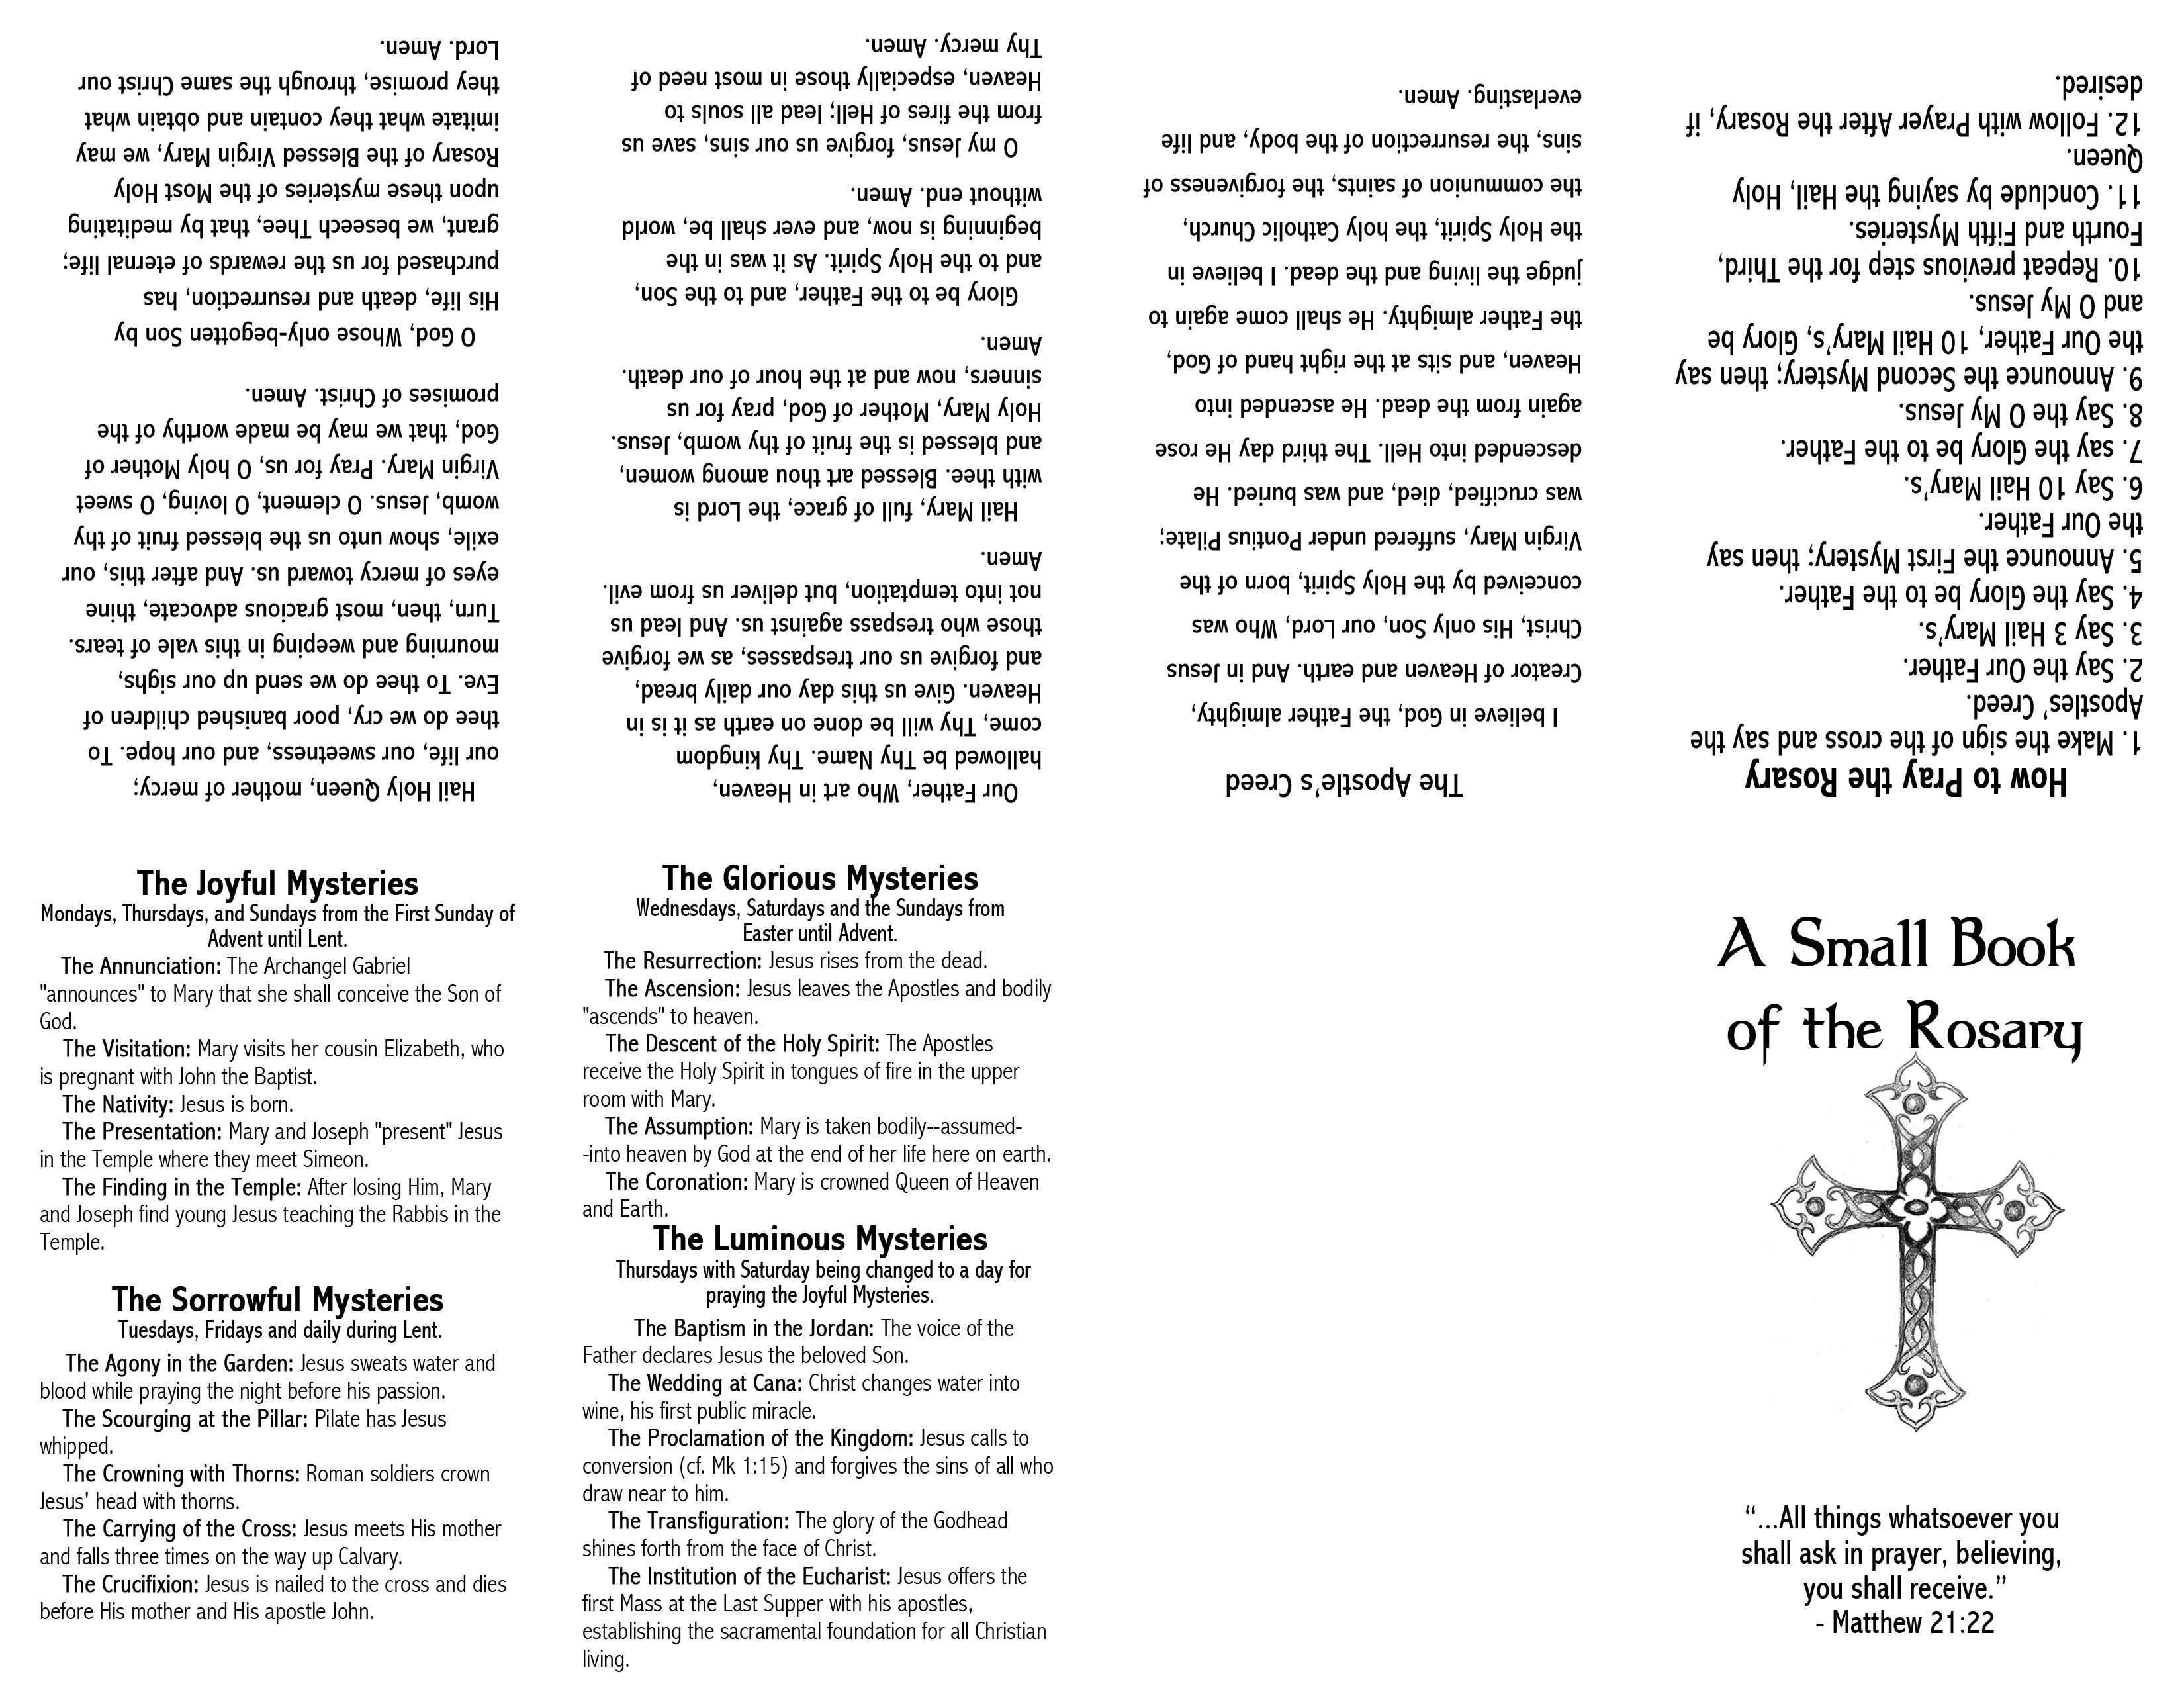 Small Book Of The Rosary Printable